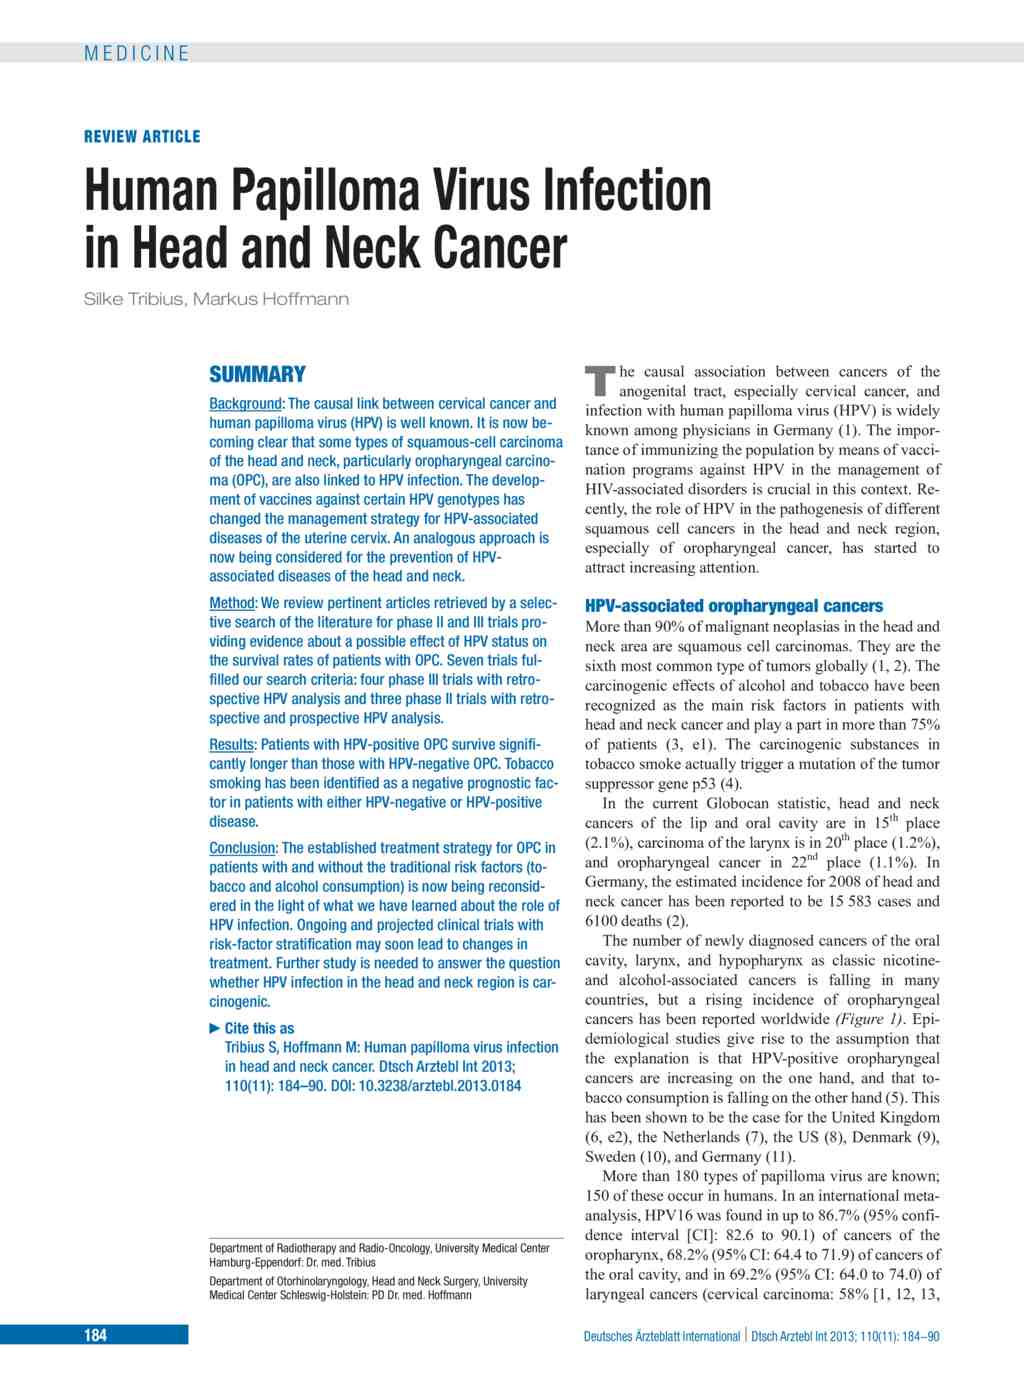 Human Papilloma Virus Infection in Head and Neck Cancer